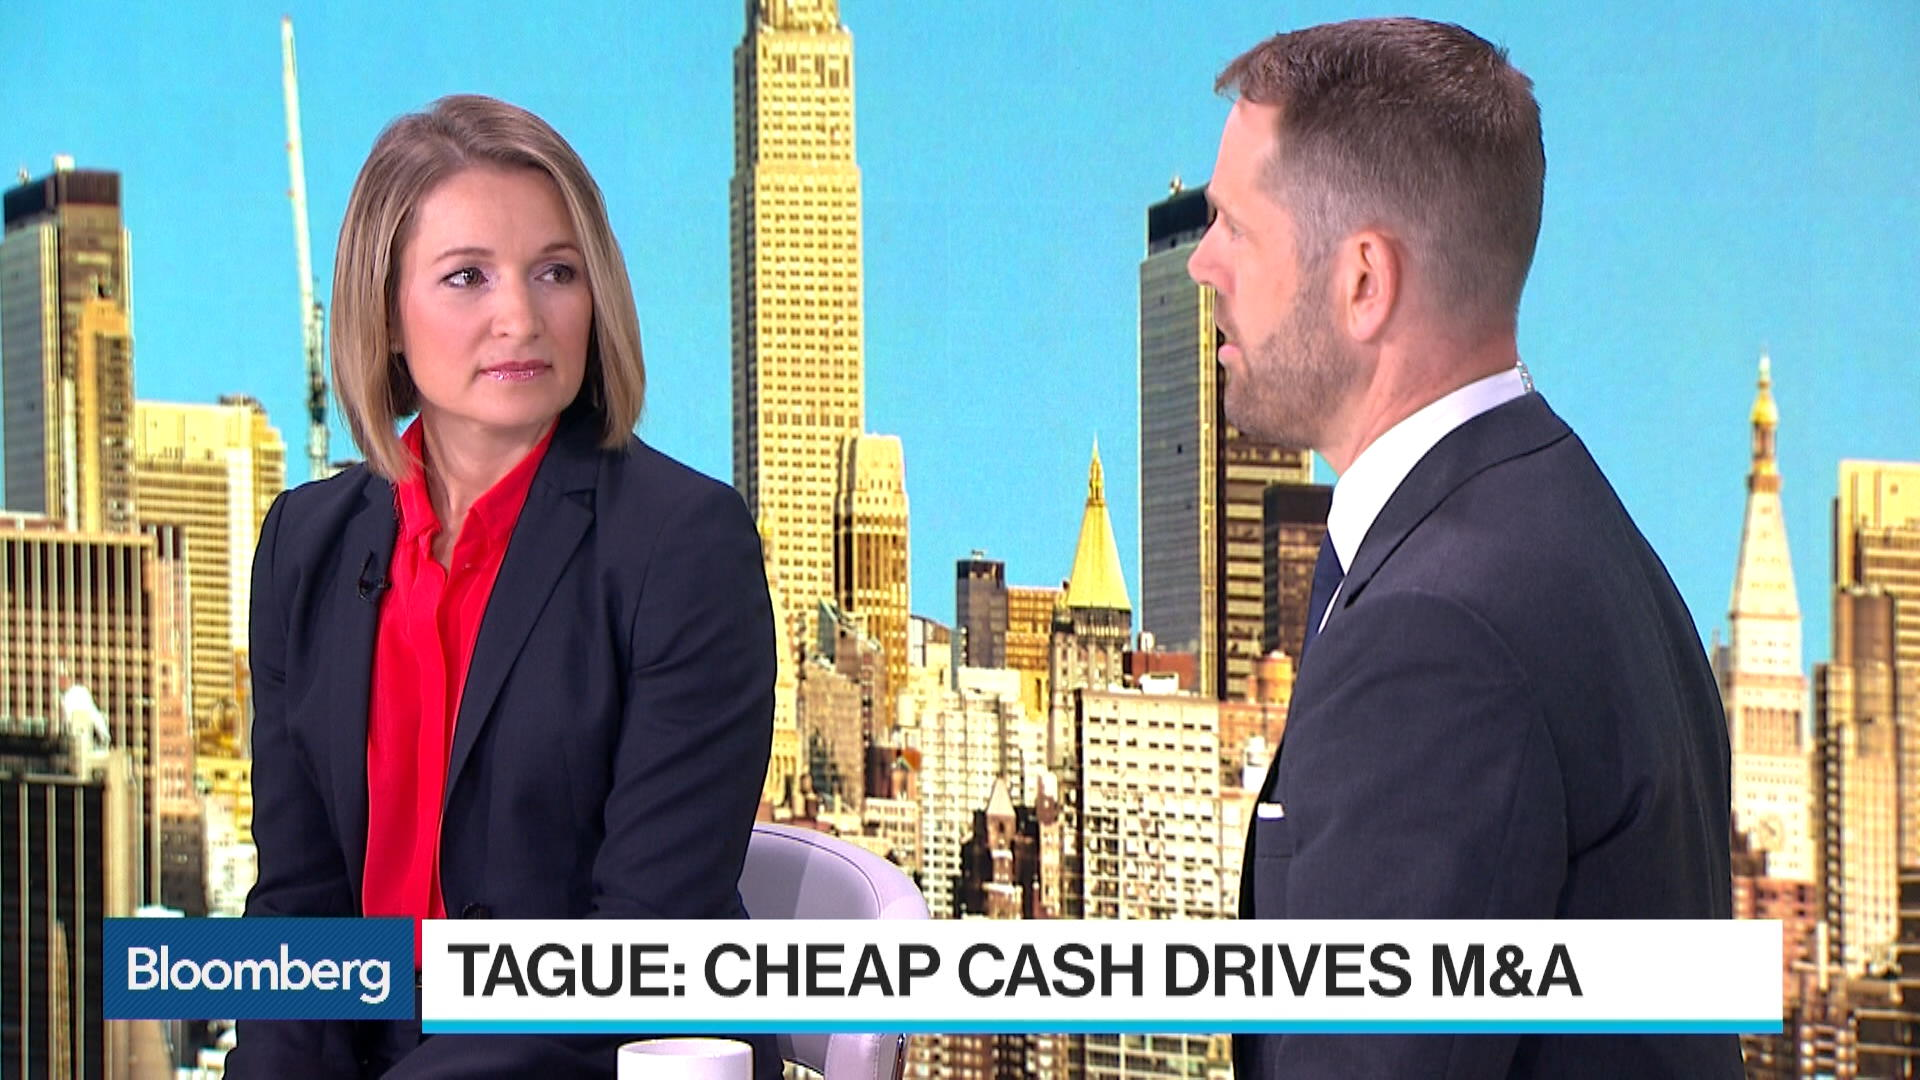 Citigroup S Tague Morgan Stanley S Zentner On M Amp A Rates Bloomberg